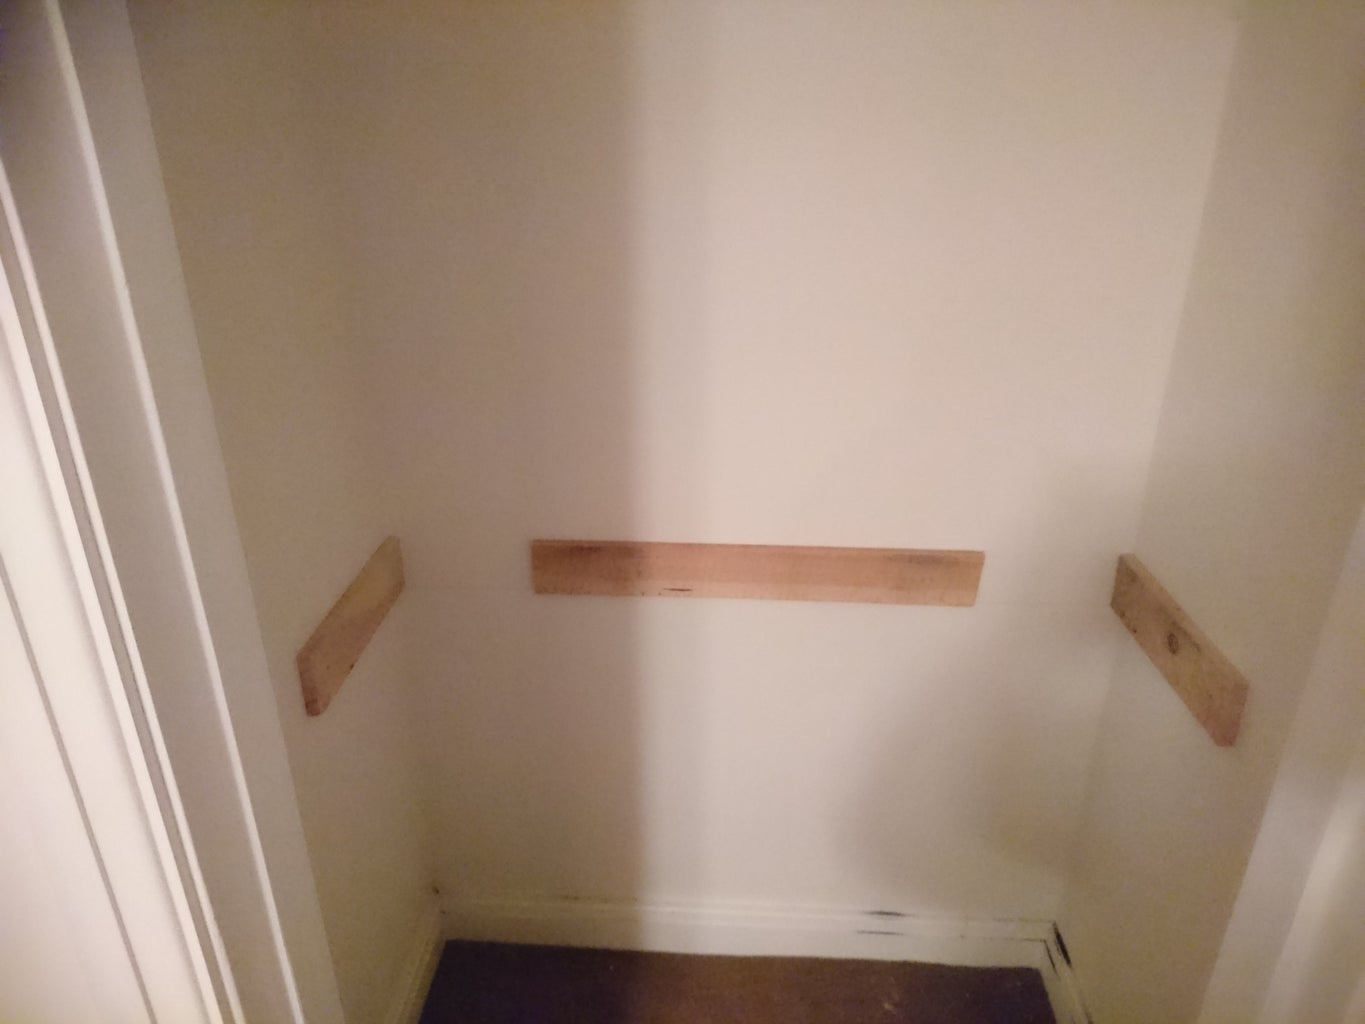 Add Wall Support